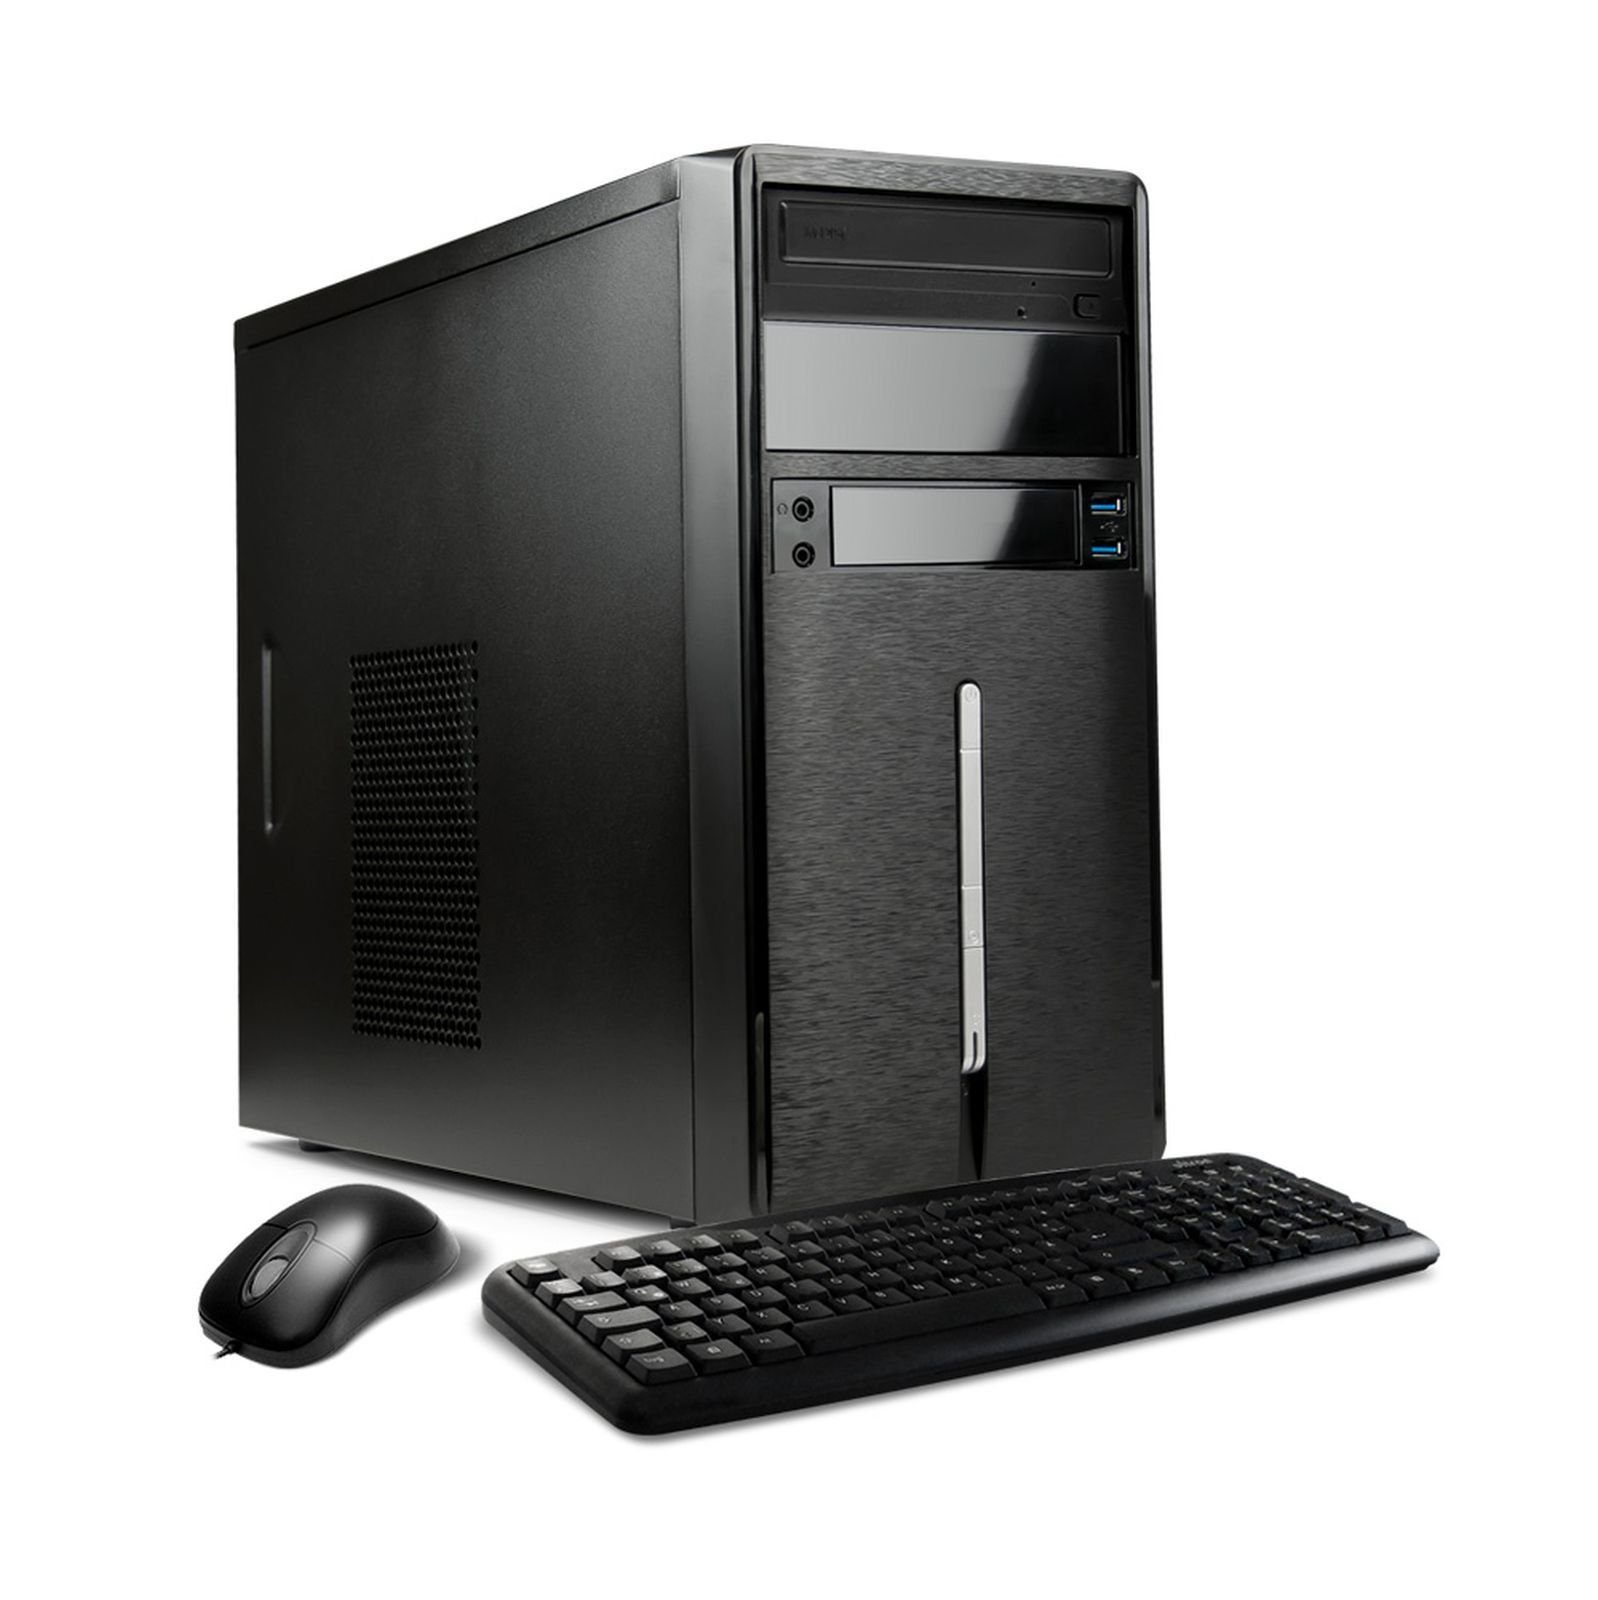 VCM Gaming PC / AMD FX-6300 / »GeForce GT 730, 2 GB / 8 GB RAM / Windows 10«